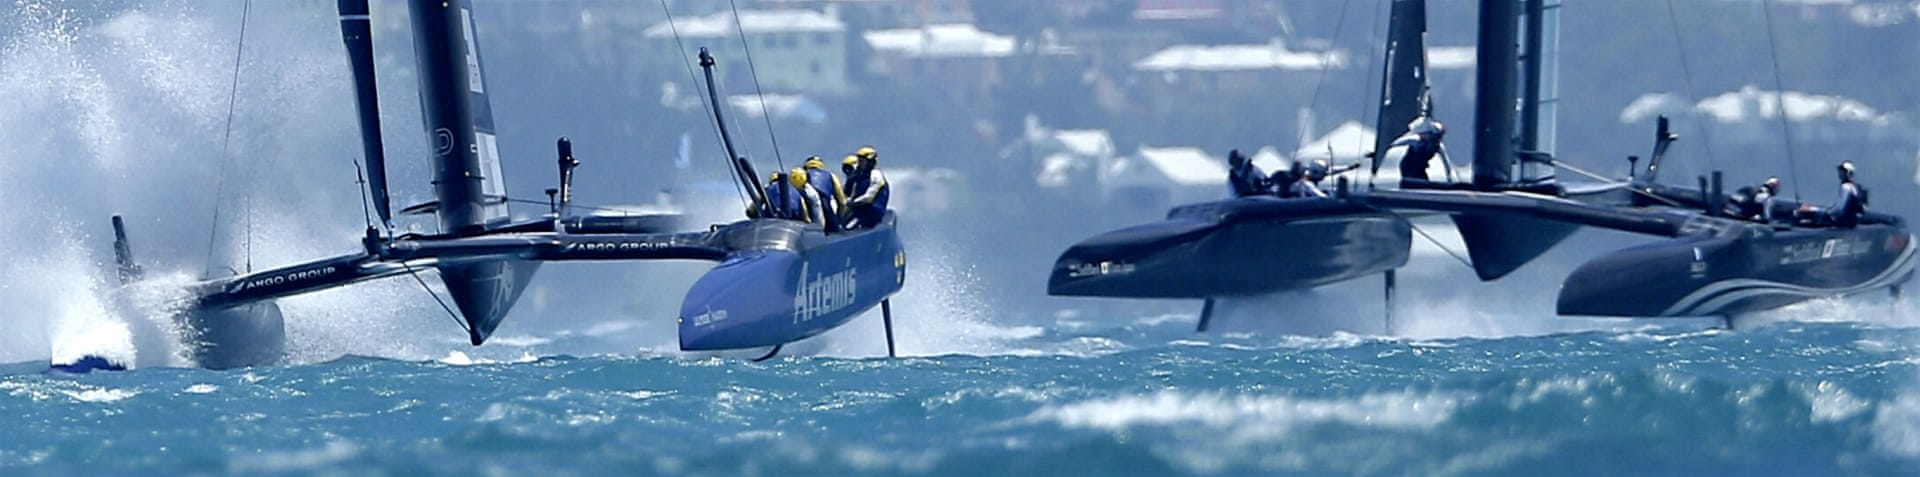 Artemis Racing skippered by Nathan Outteridge races during the 35th America's Cup, Louis Vuitton Challenger Playoffs finals in Hamilton, Bermuda on June 11, 2017. 